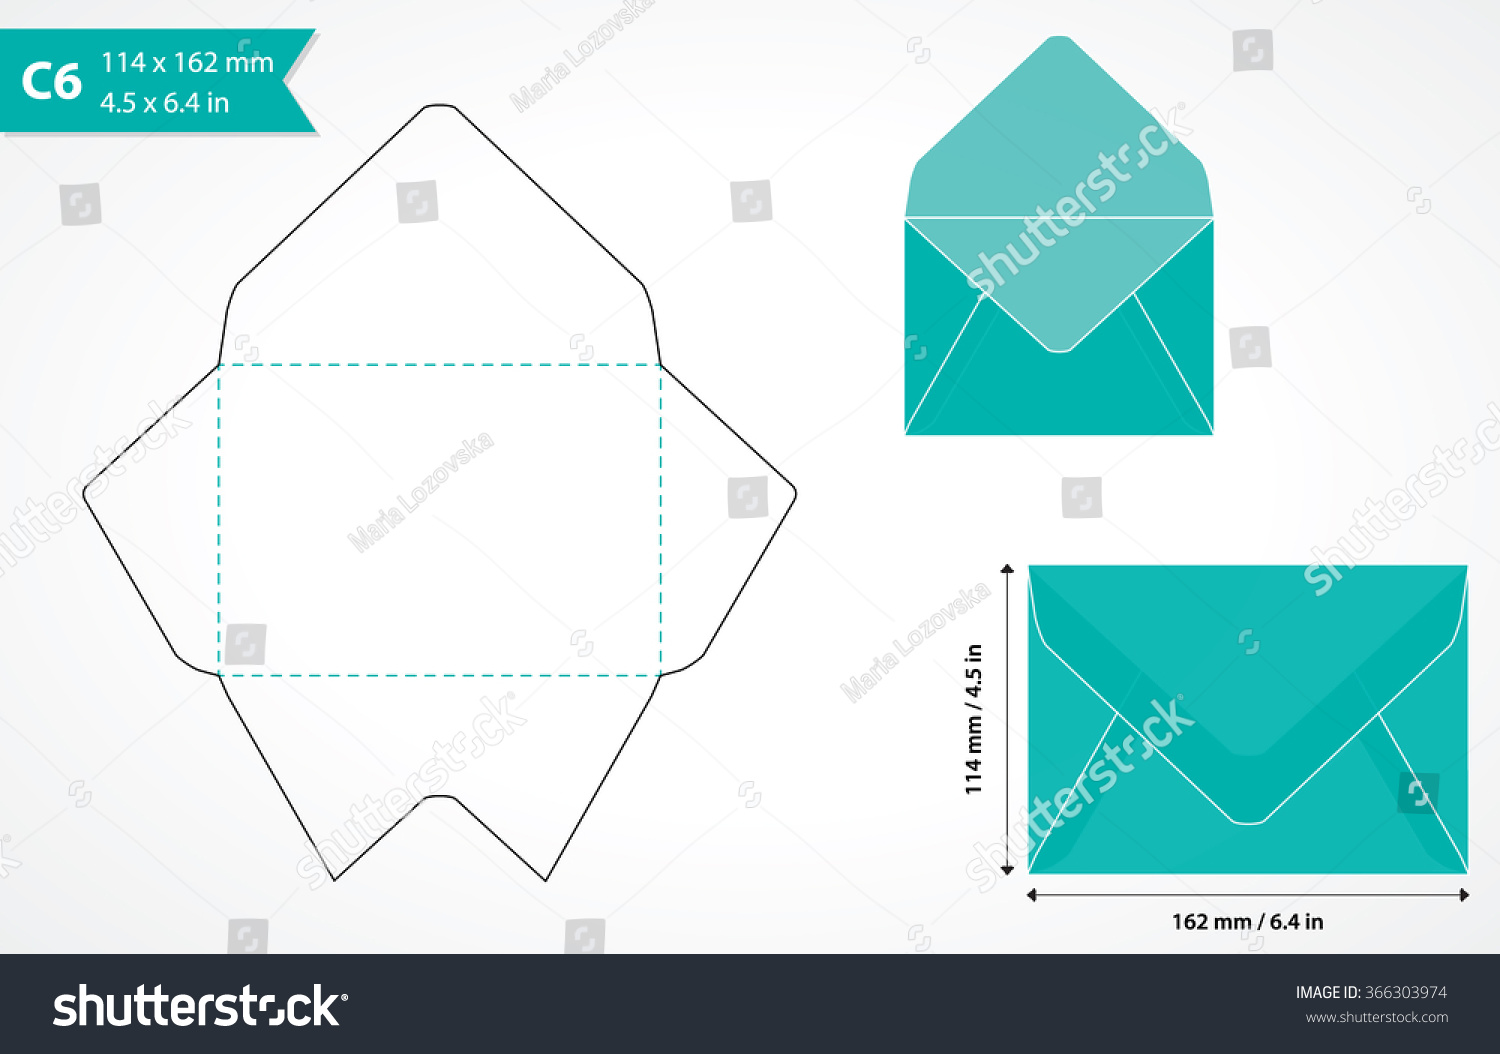 cutout paper envelope template perfect making stock vector 366303974 shutterstock. Black Bedroom Furniture Sets. Home Design Ideas